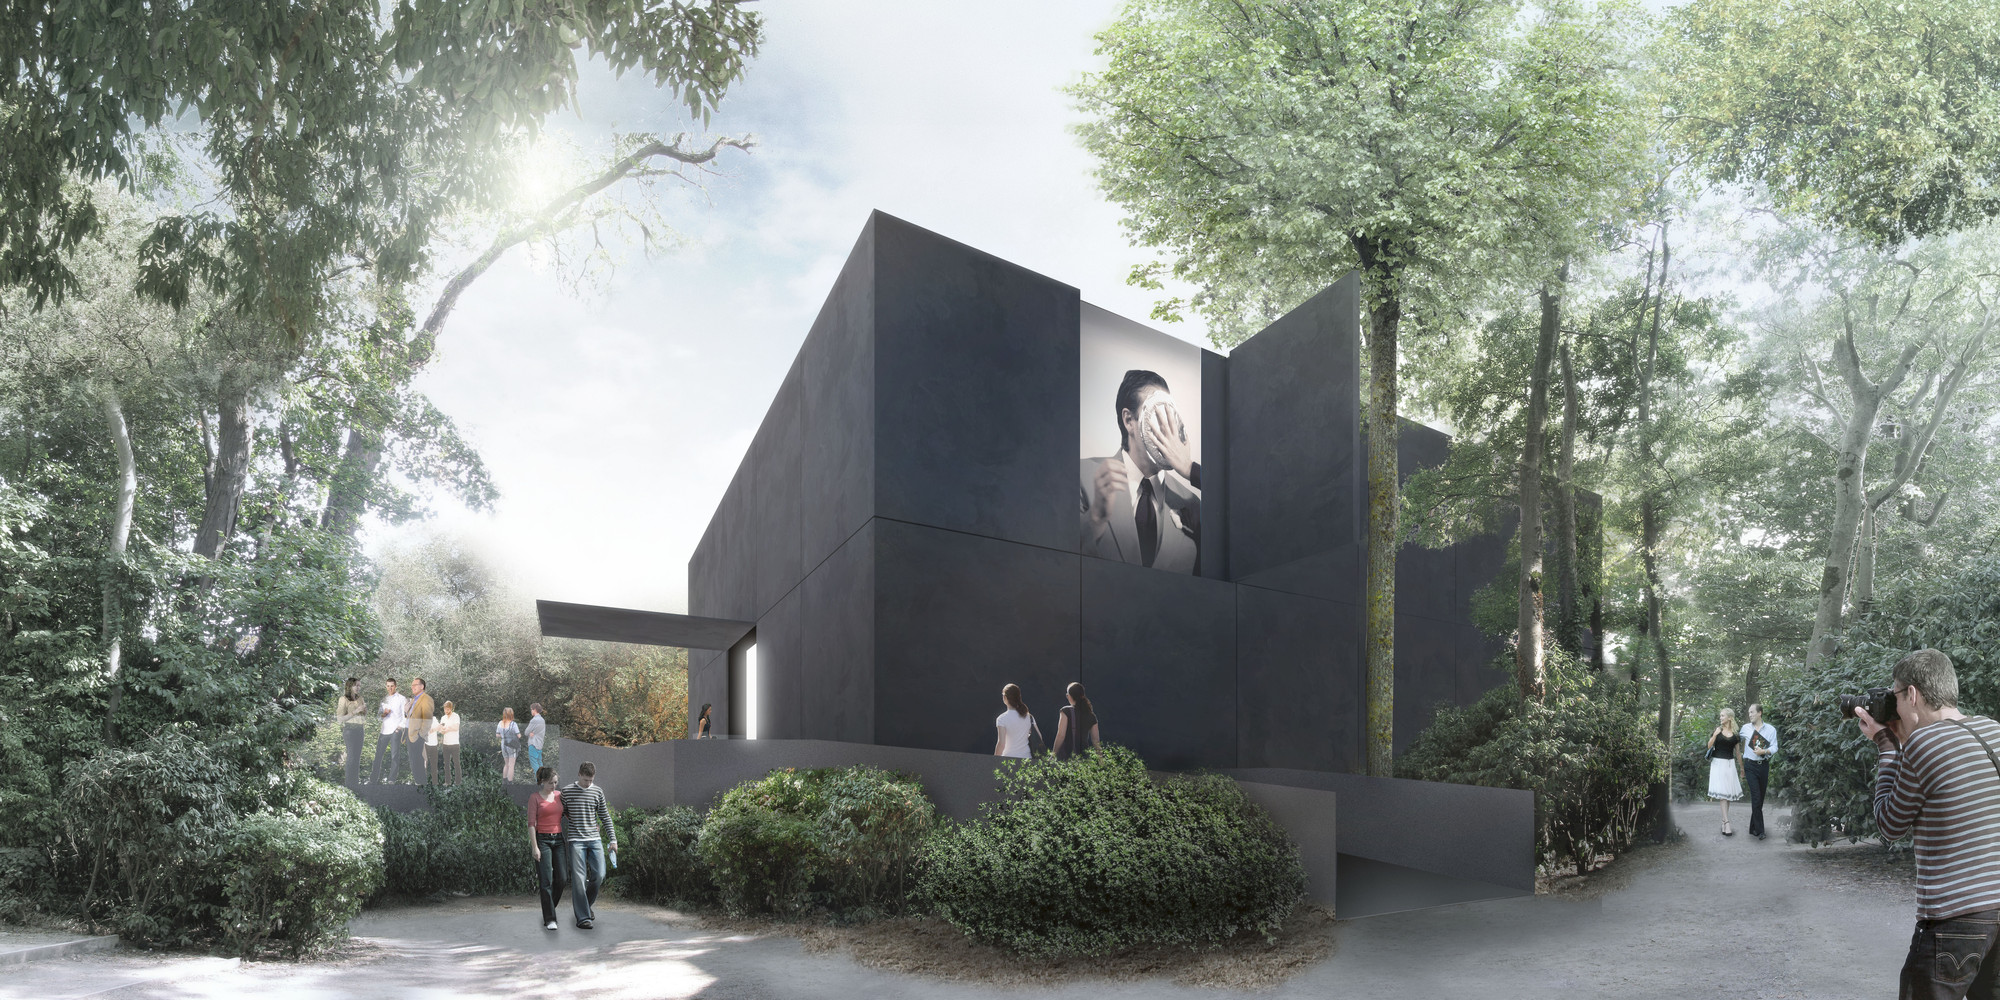 Denton Corker Marshall To Design First 21st Century Pavilion in Venice's Giardini, © Denton Corker Marshall